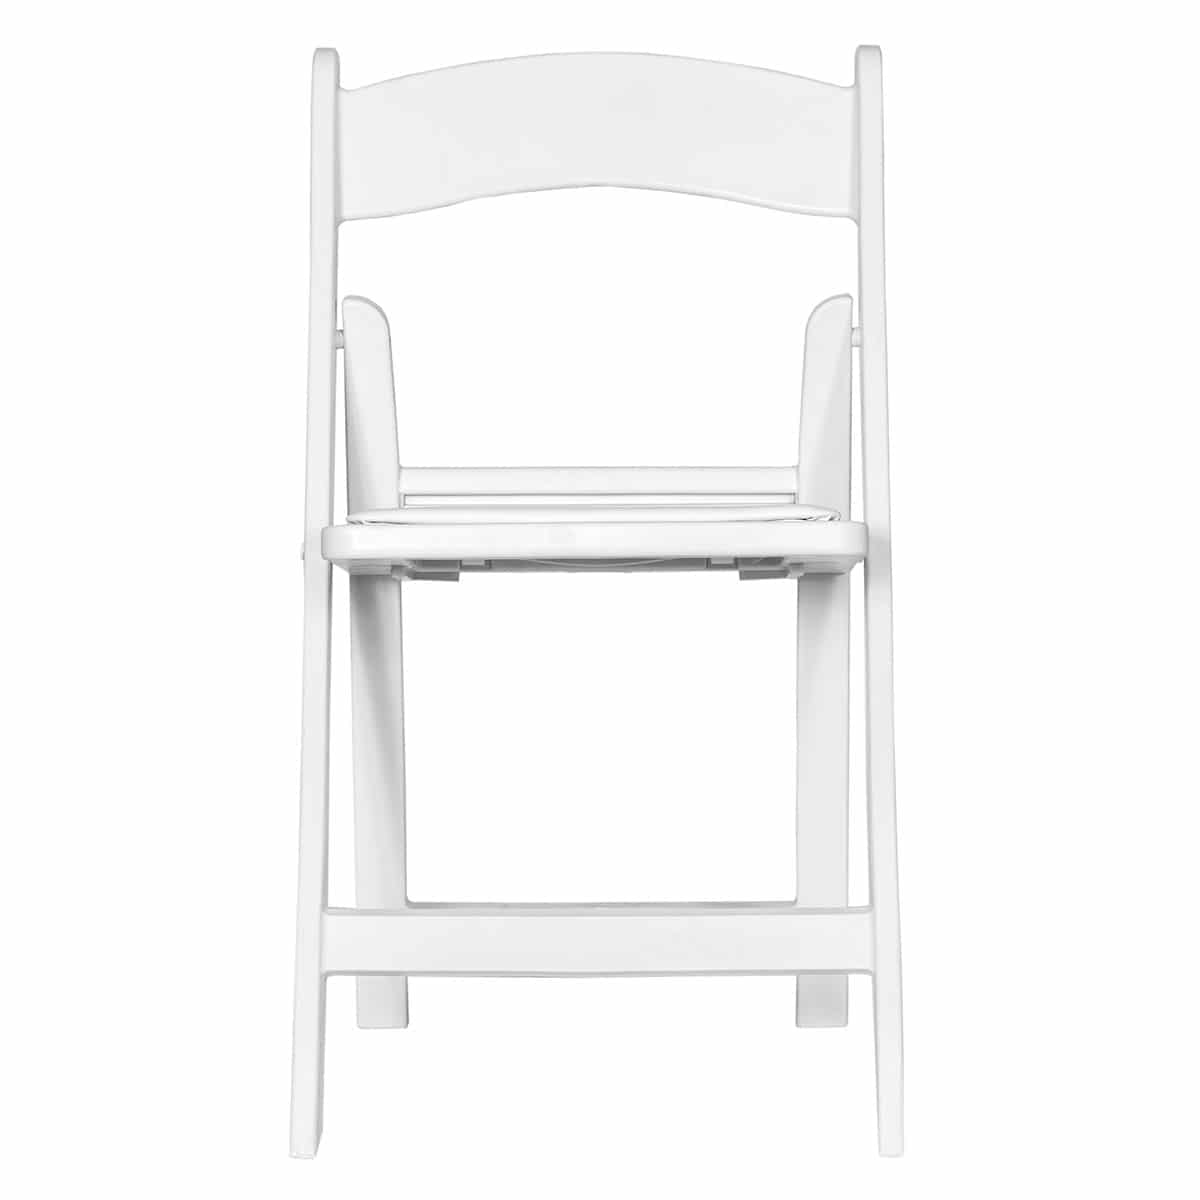 Economic white folding chair Sphinx model - Front view